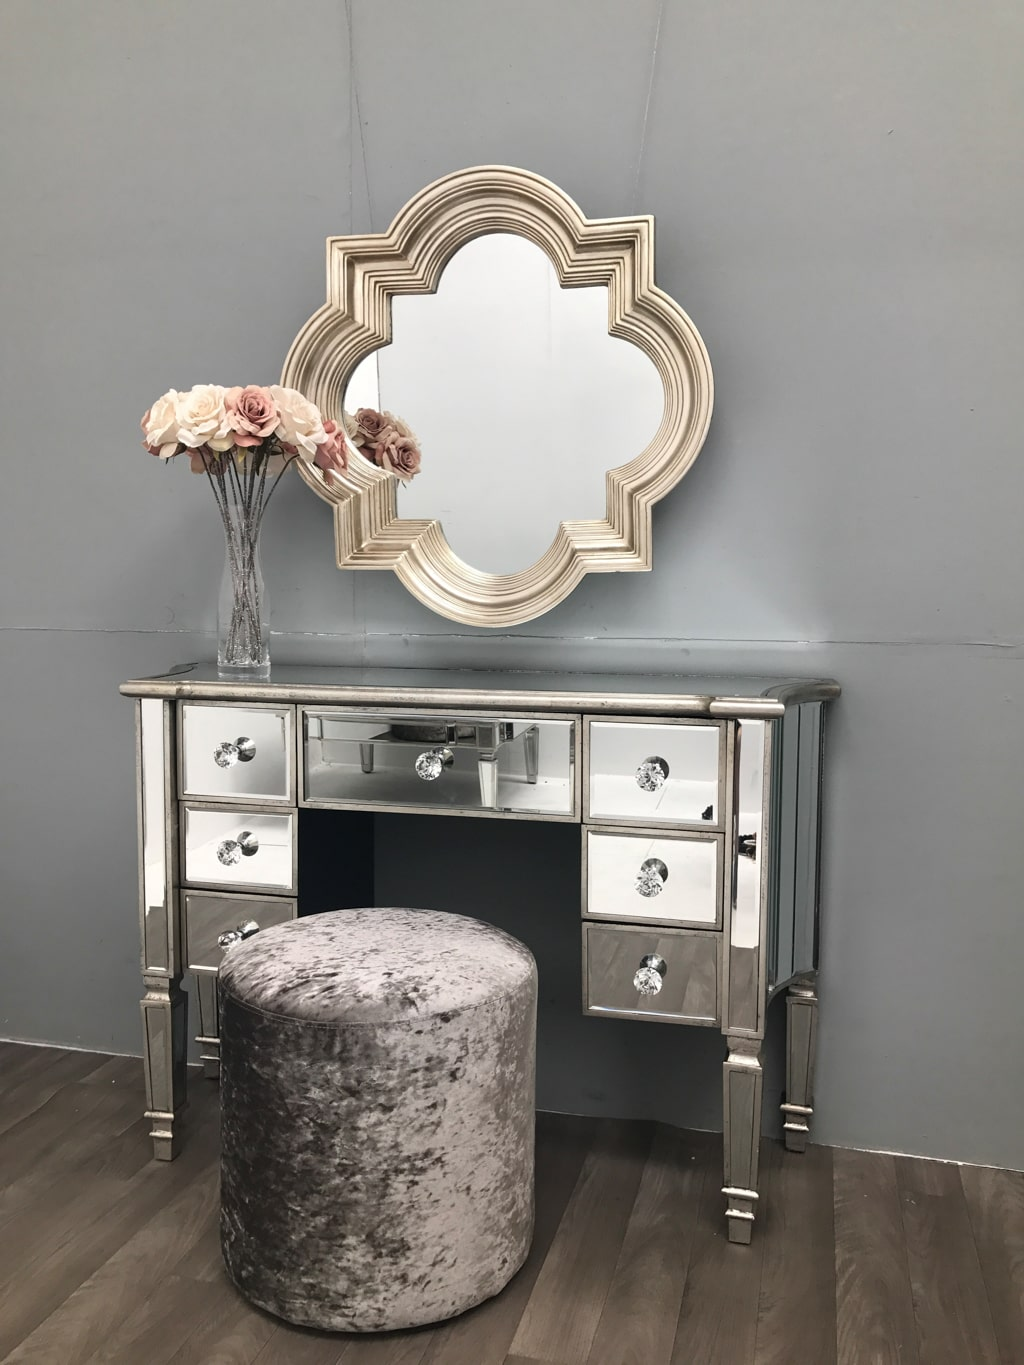 Mirrored Dressing Table With 7 Drawers - Modern Silver Edge Marbella